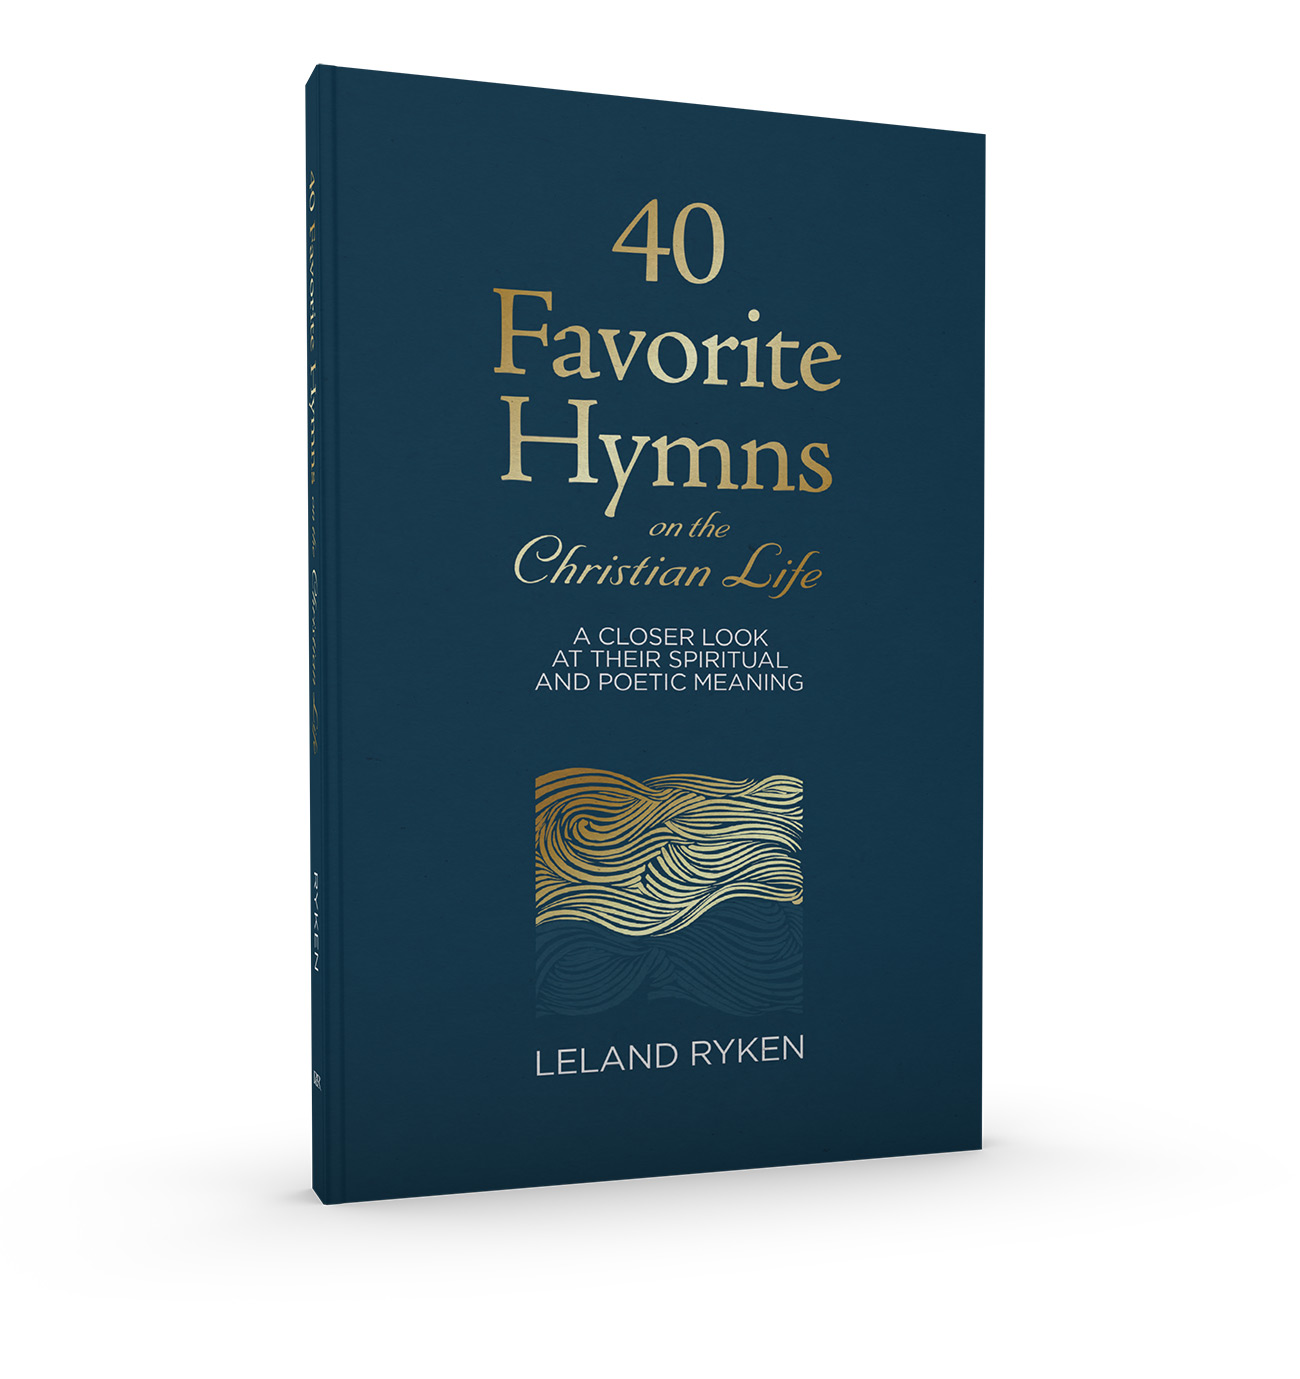 40 Favorite Hymns on the Christian Life